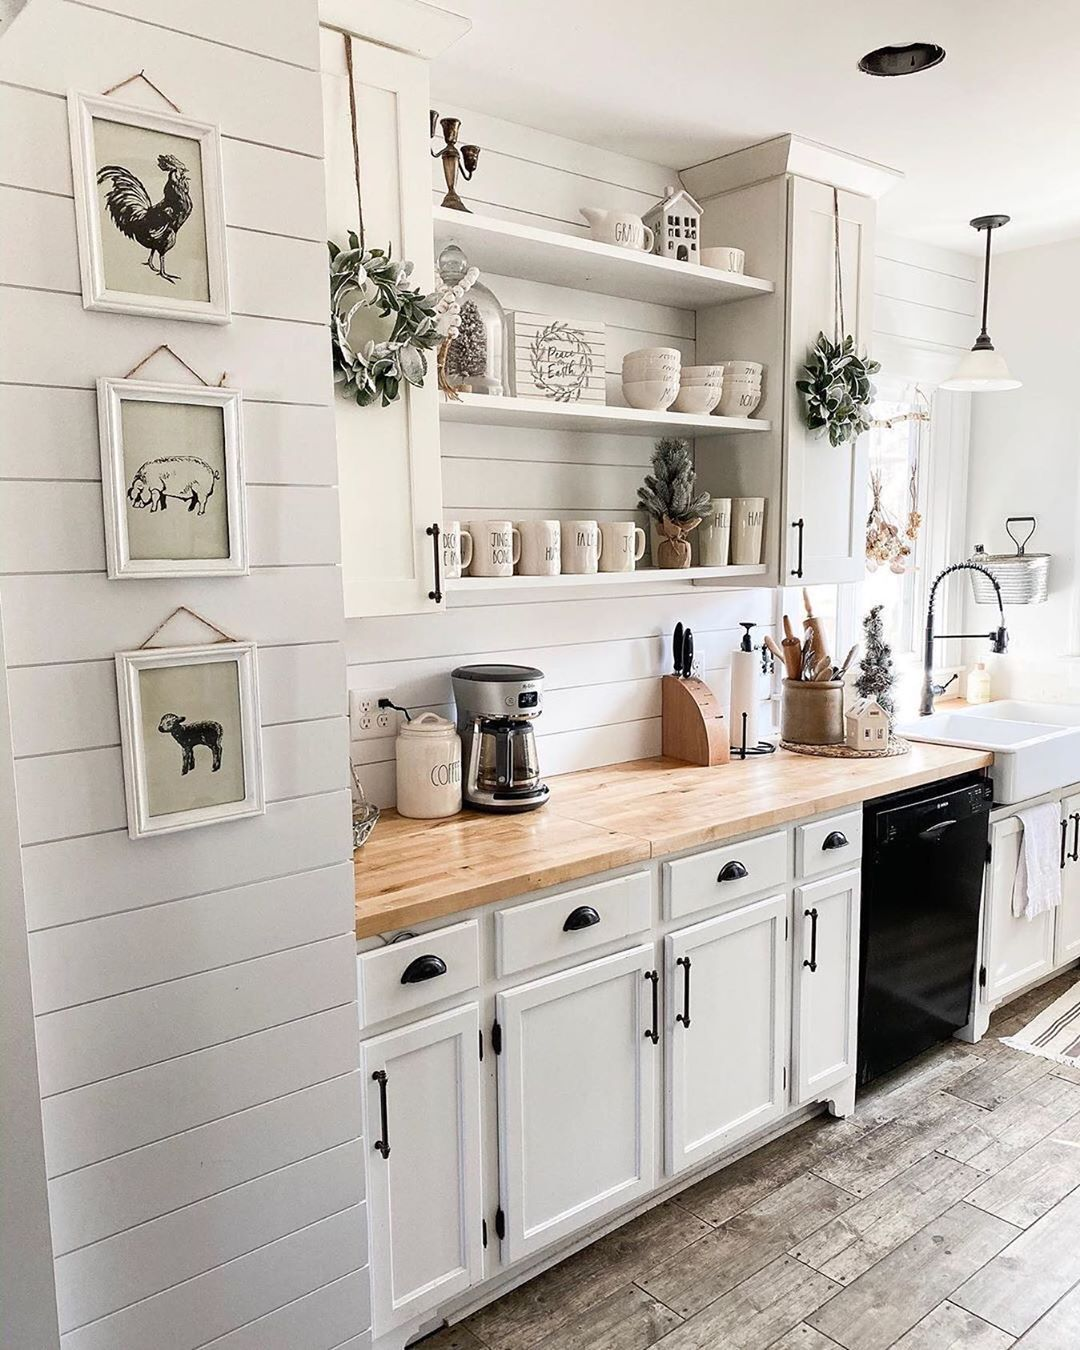 Farmhouse Fanatics On Instagram Comment Your Favorite Thing About This Kitchen In 2020 White Farmhouse Kitchens Open Shelving Kitchen Cabinets Grey Kitchen Floor